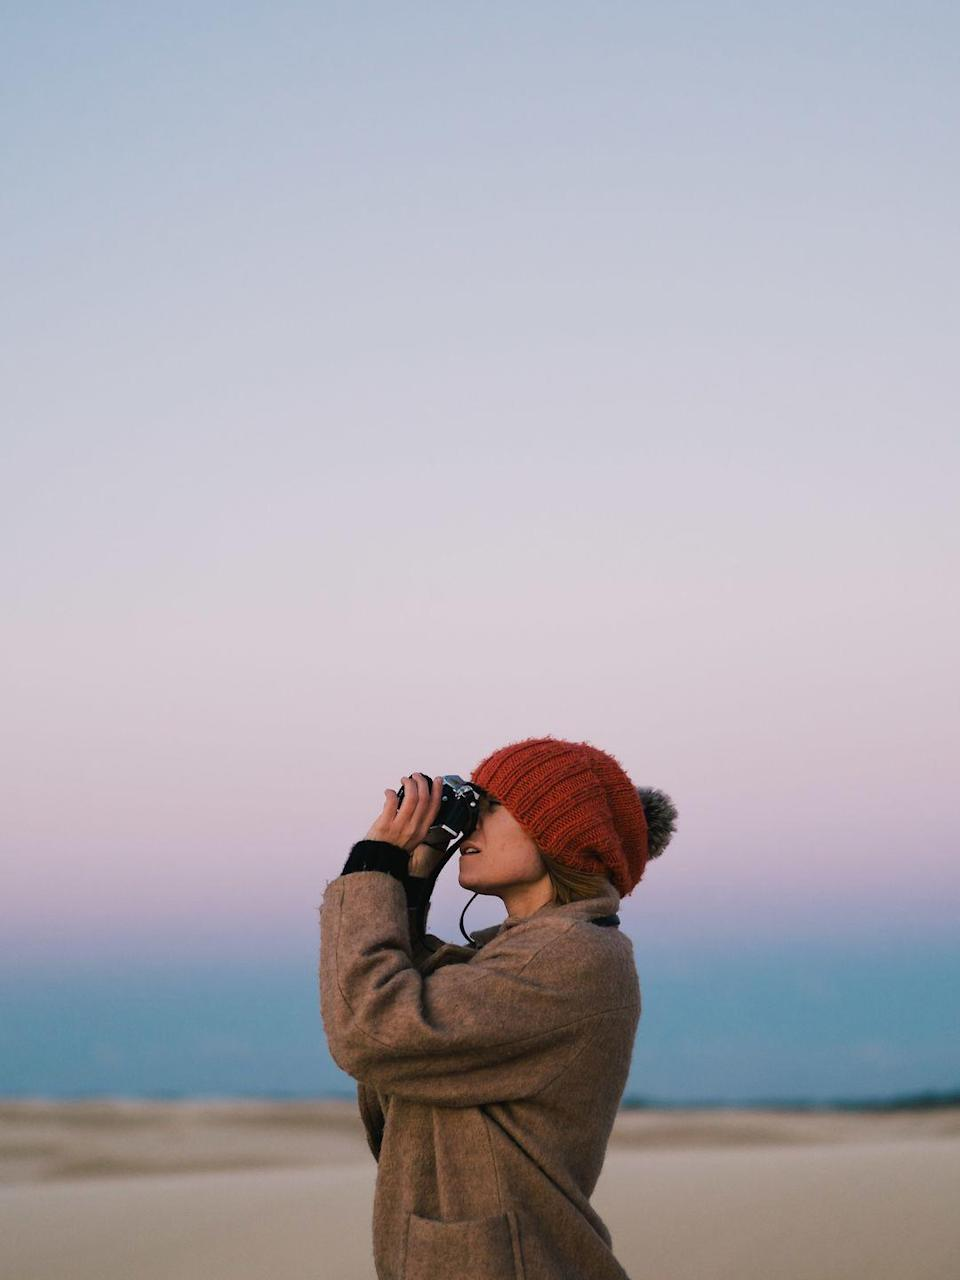 """<p>Whether you use a smartphone, mirrorless or DSLR camera, this course will teach you various photography styles including that of product, low light, sports and action and street, as well as uunderstanding how cameras work and what equipment you need. </p><p><strong>Duration</strong>: 22 hours on-demand video</p><p>£15.99</p><p><a class=""""link rapid-noclick-resp"""" href=""""https://go.redirectingat.com?id=127X1599956&url=https%3A%2F%2Fwww.udemy.com%2Fcourse%2Fphotography-masterclass-complete-guide-to-photography%2F&sref=https%3A%2F%2Fwww.elle.com%2Fuk%2Flife-and-culture%2Fg32077844%2Fbest-online-learning-courses%2F"""" rel=""""nofollow noopener"""" target=""""_blank"""" data-ylk=""""slk:BUY NOW"""">BUY NOW</a></p>"""